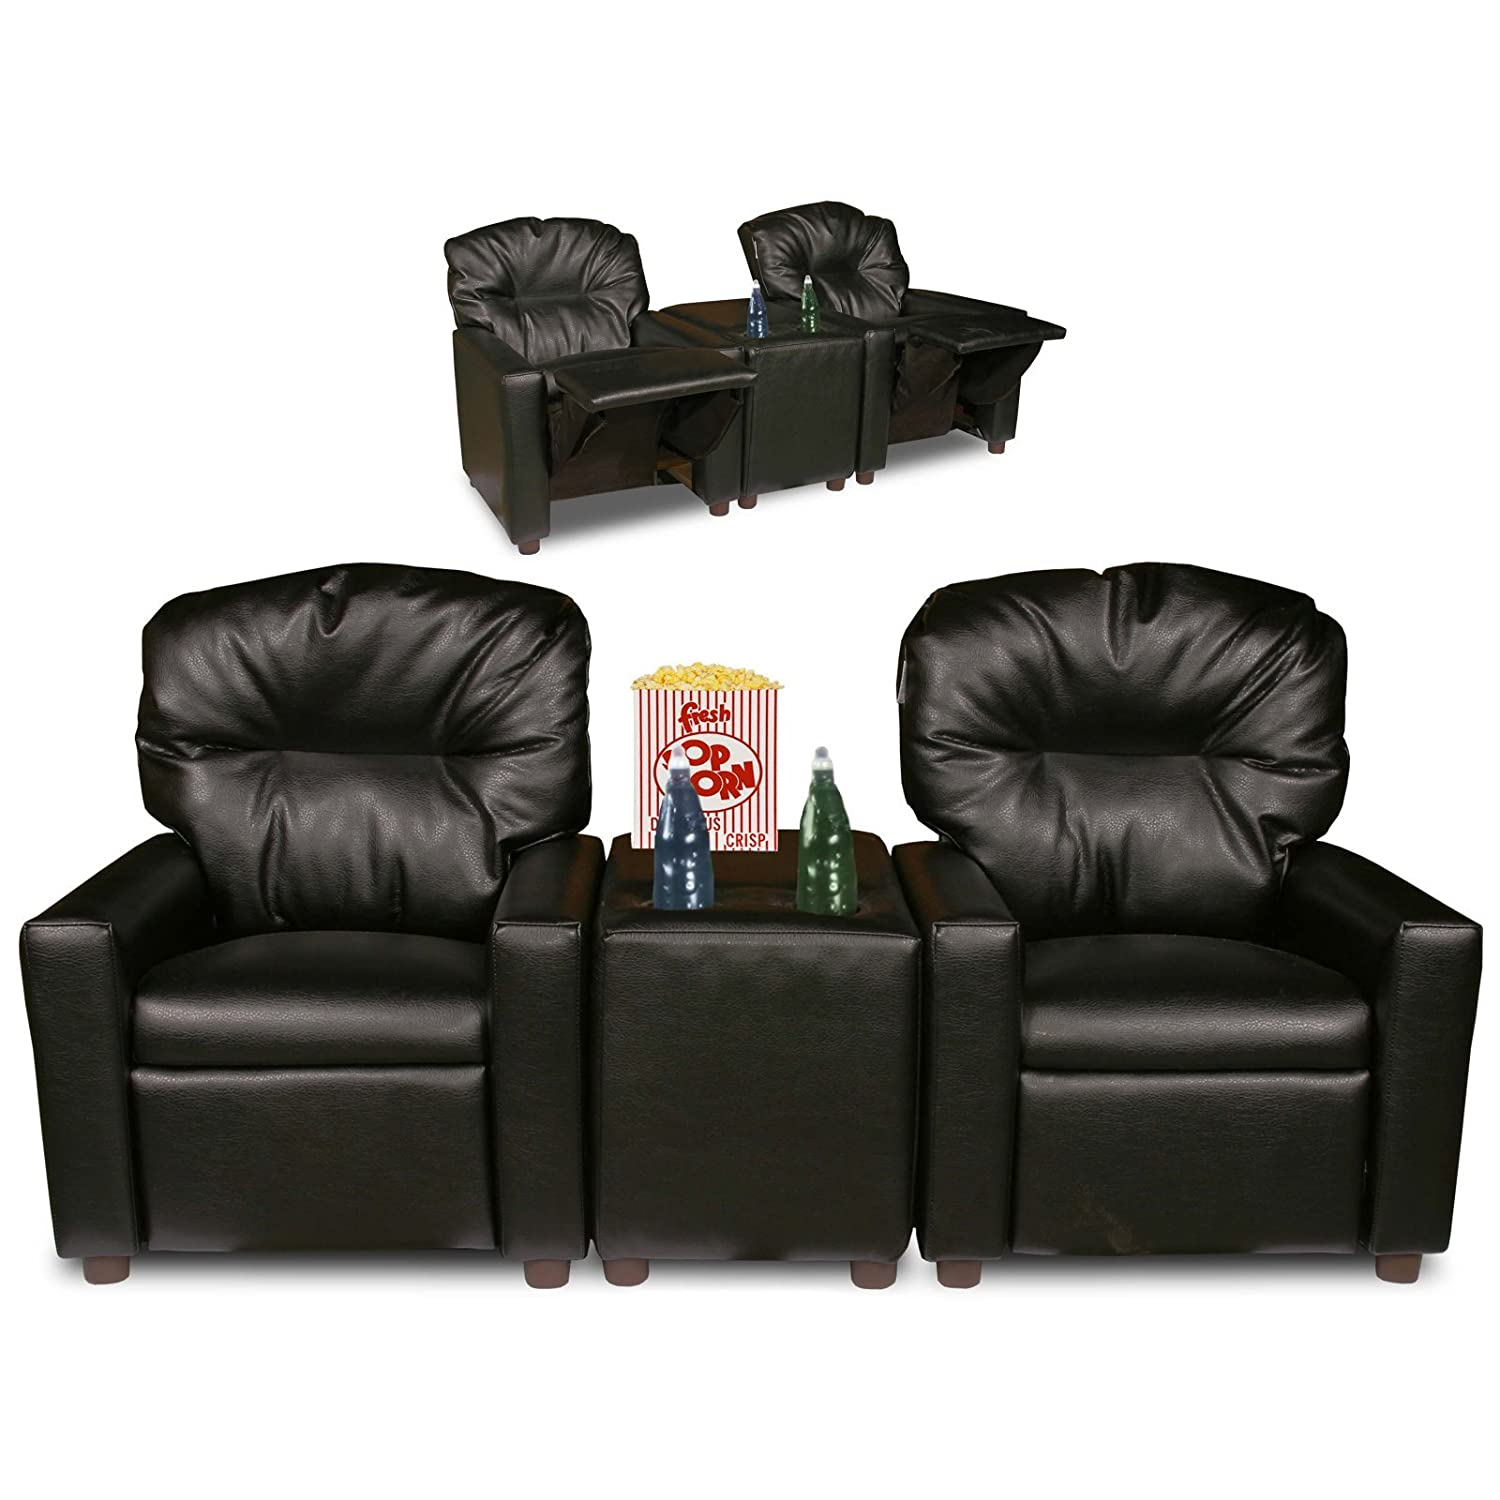 Amazon.com Dozydotes Kids 2 Seat Theater Seating Recliner Kitchen u0026 Dining  sc 1 st  Amazon.com & Amazon.com: Dozydotes Kids 2 Seat Theater Seating Recliner ... islam-shia.org